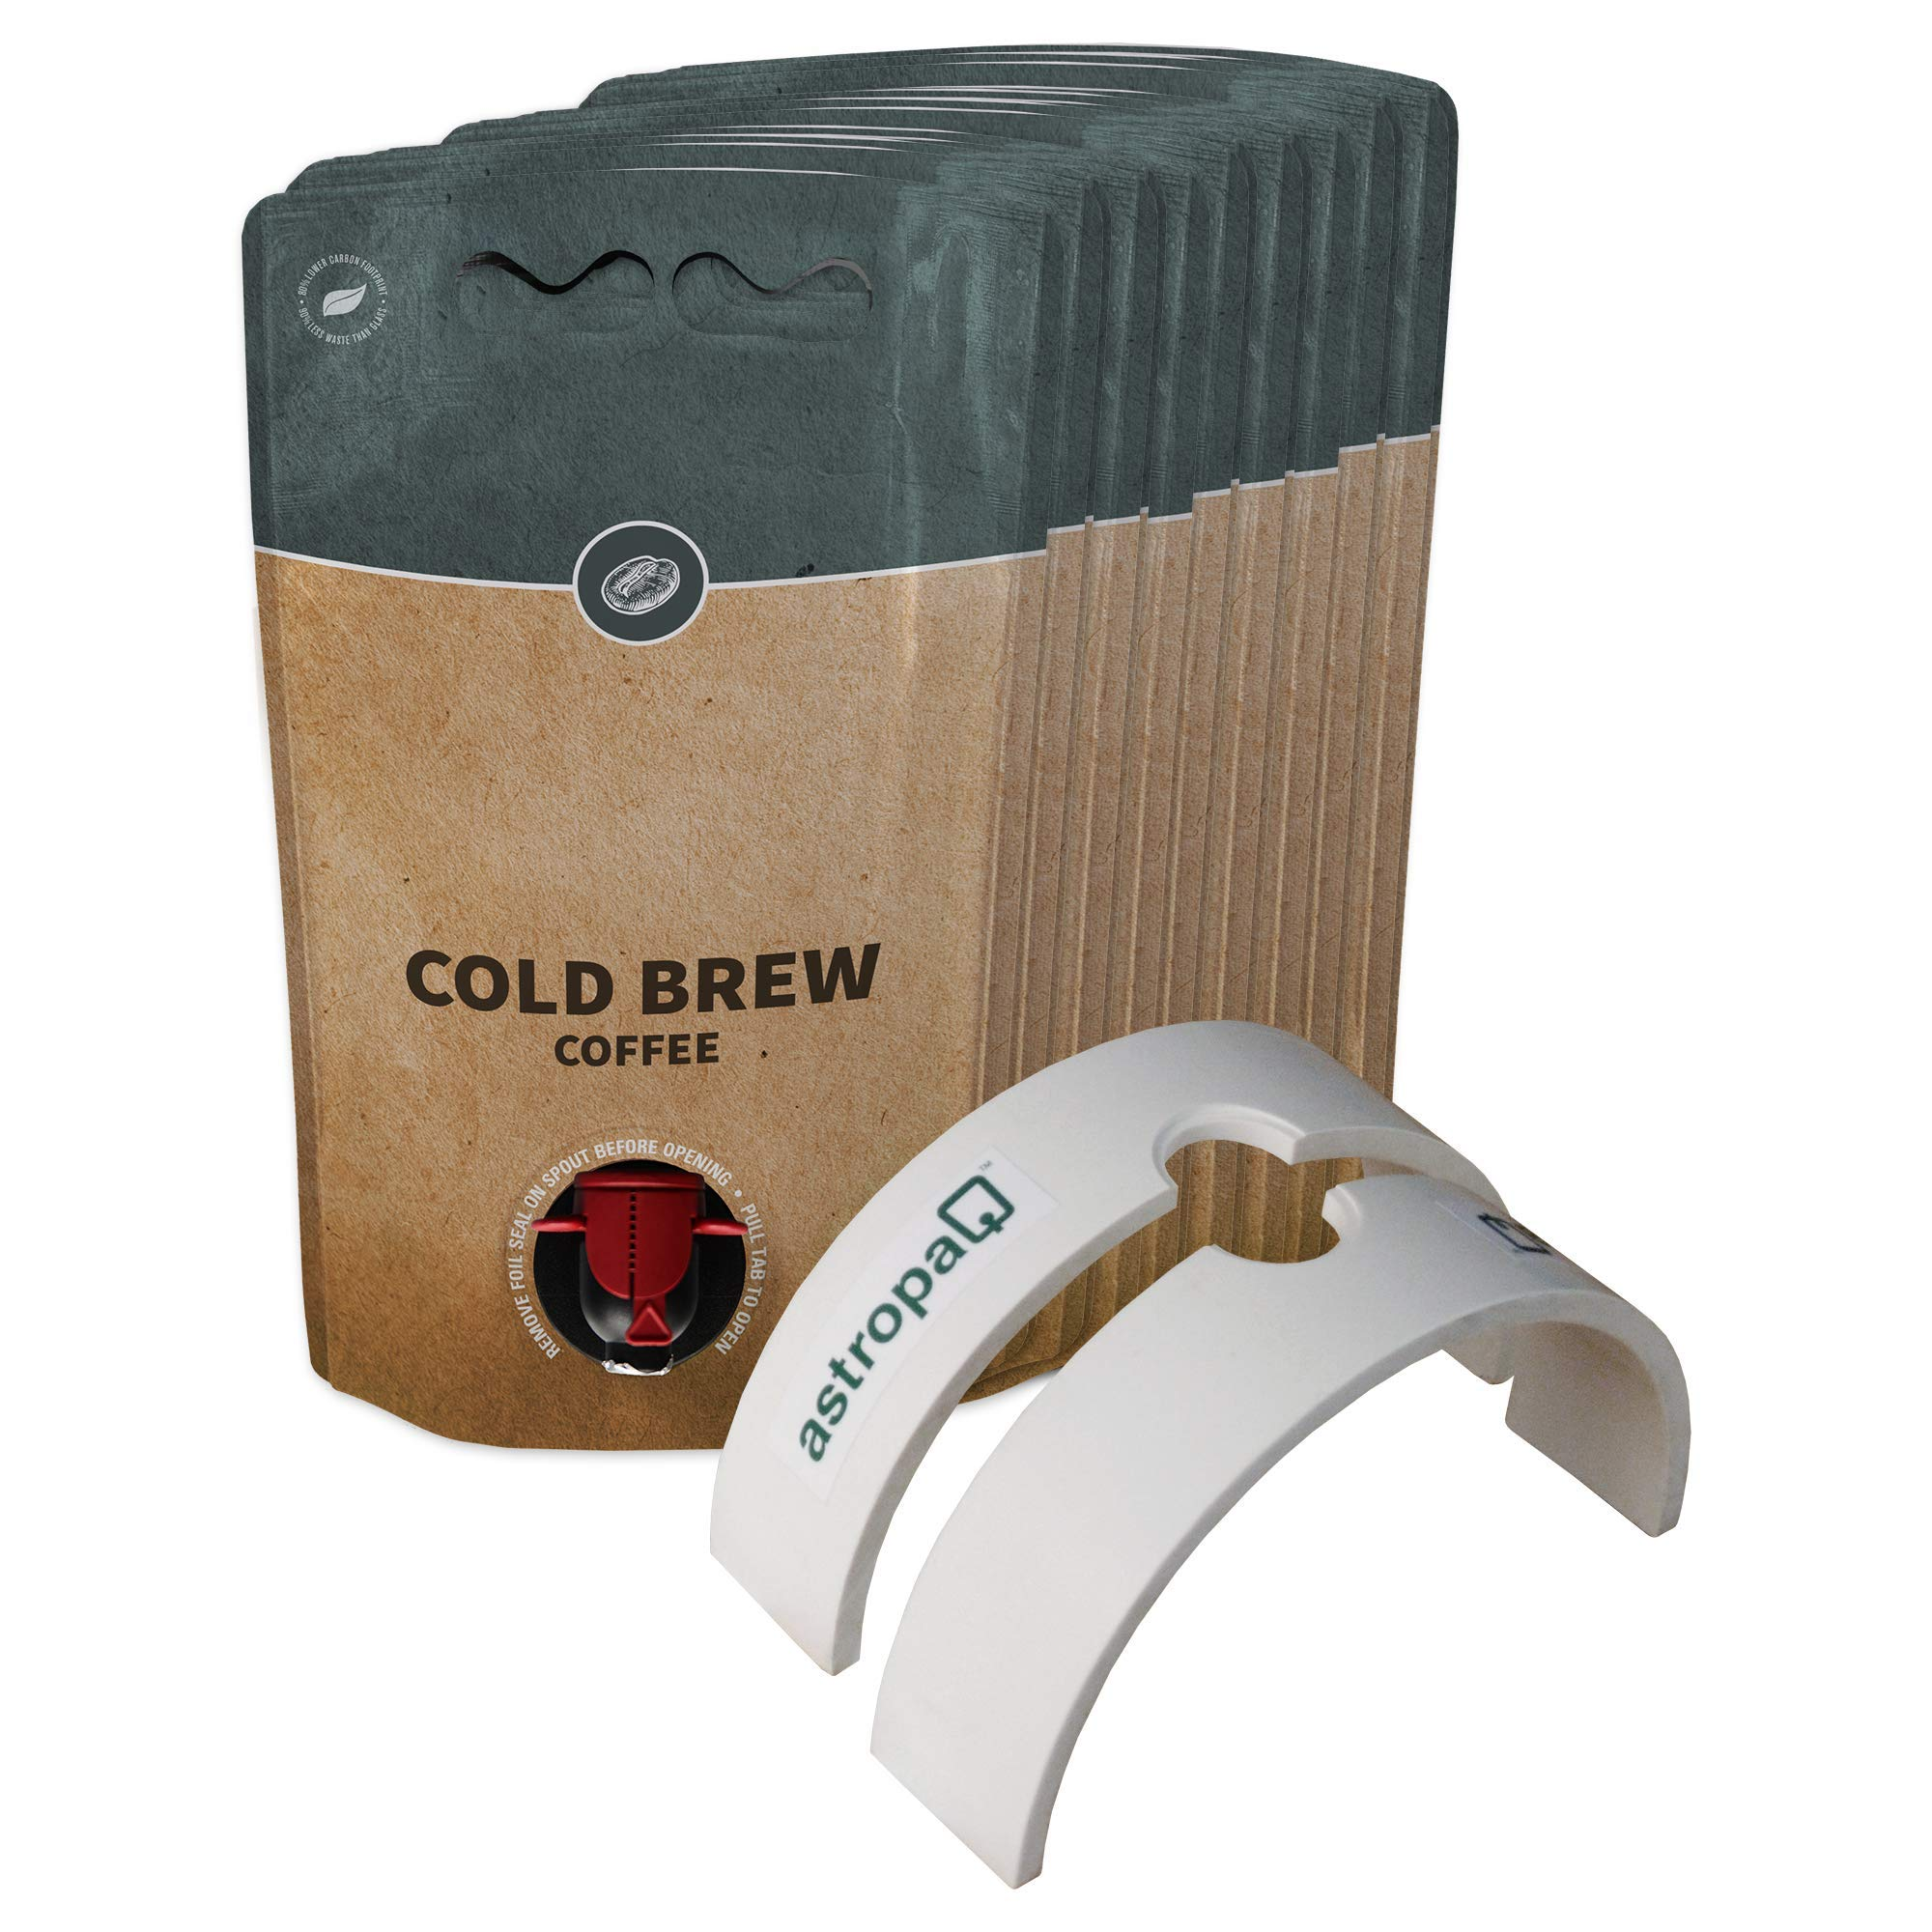 1.5L Cold Brew Coffee Pouch Storage and Dispensing Starter Kit -Everything You Need to Easily Package and Store Your Coffee in Convenient and Easy to Carry Pouches (15 x 1.5L Cold Brew Coffee Pouches)